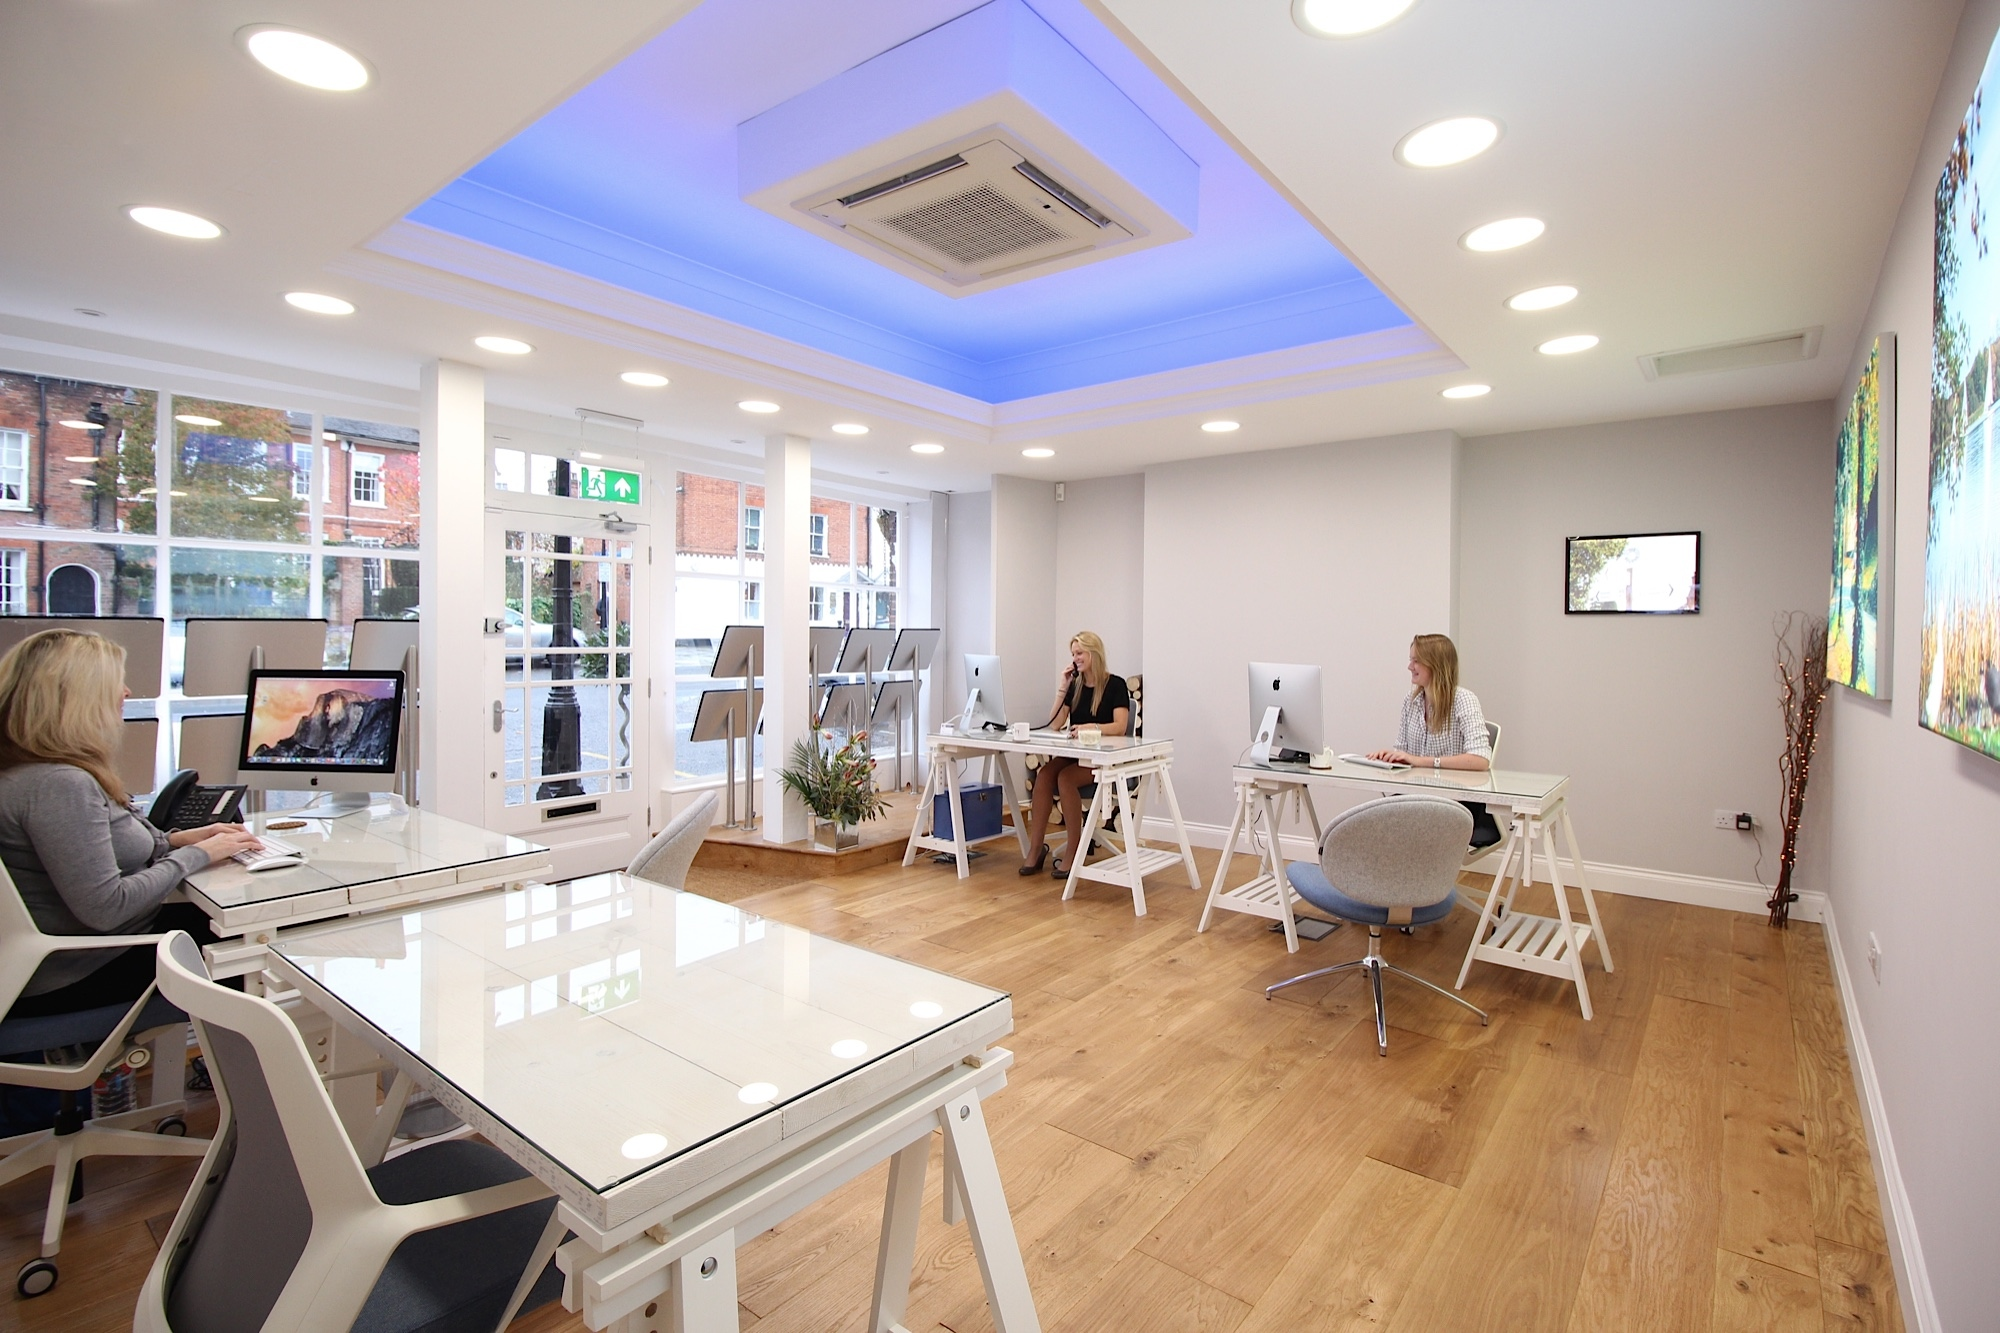 SEYMOURS OPENS FARNHAM OFFICE